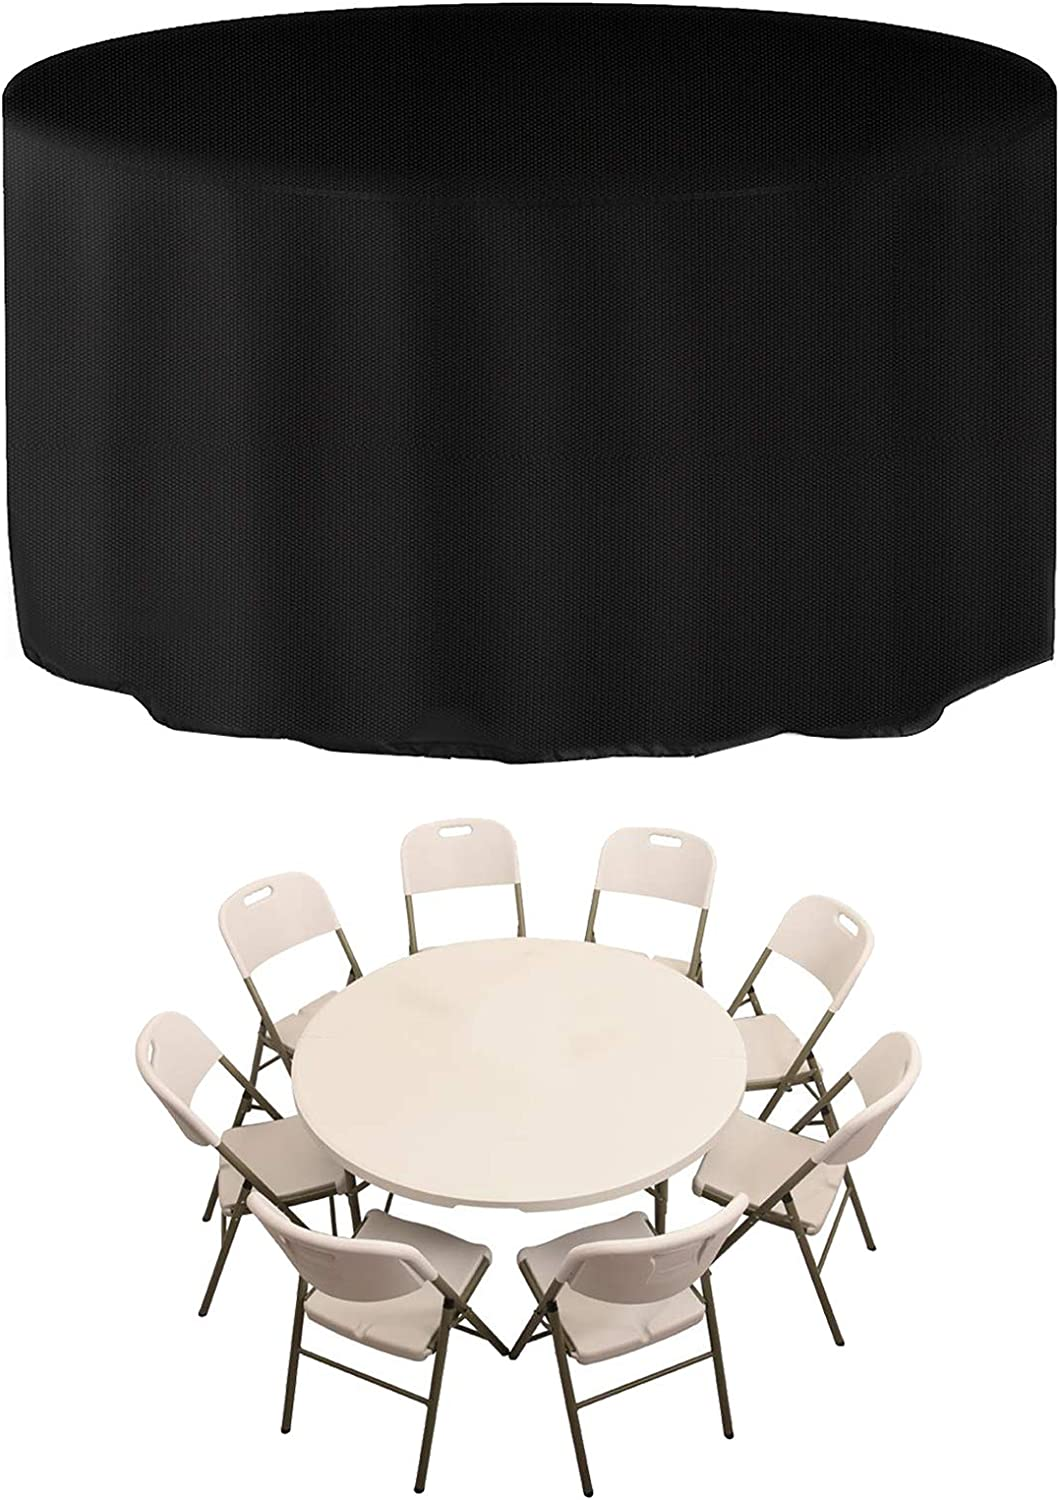 JESTOP Patio Furniture Cover 600D, Outdoor Round Table Chair Set Covers Waterproof Heavy Duty with 2 Fixing Buckles and Wind Draw String, 73